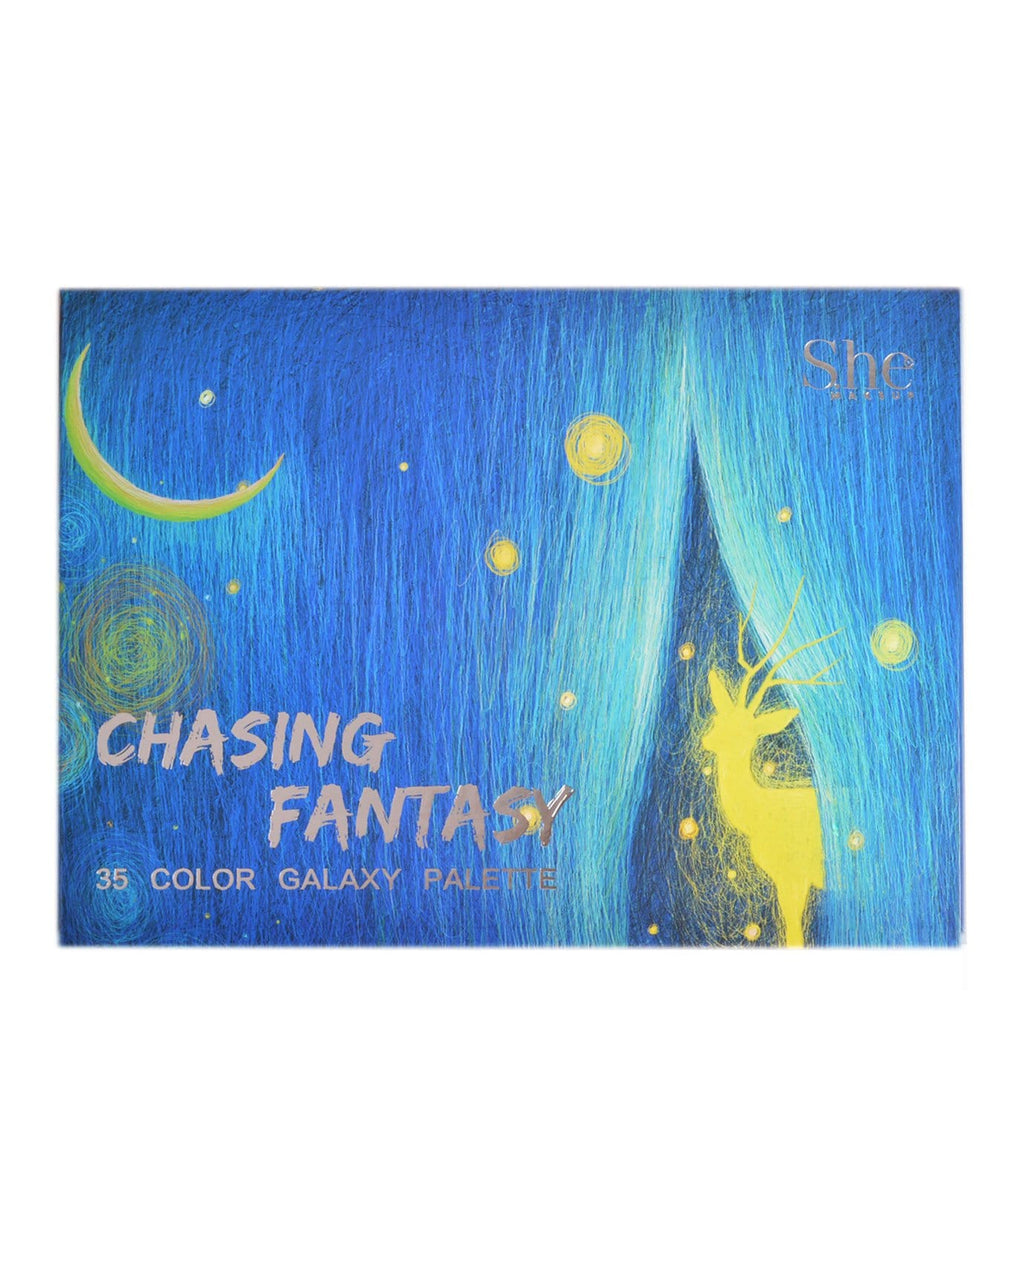 S.he Chasing Fantasy 35 Color Galaxy Palette